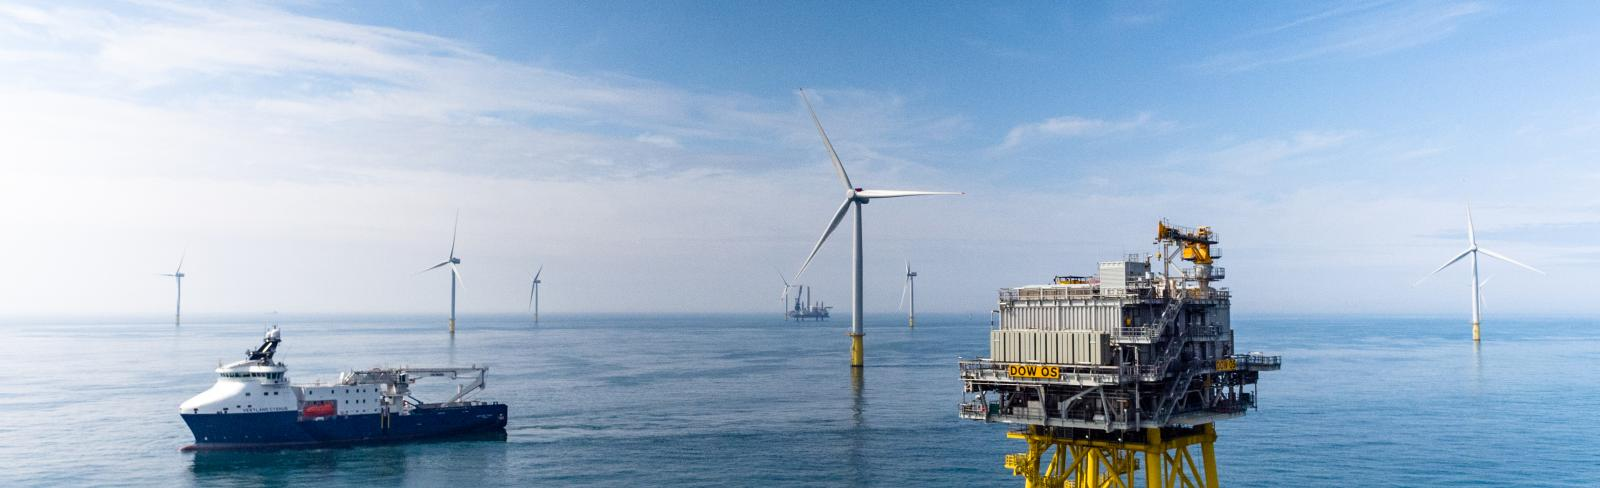 Going Global: Expanding Offshore Wind To Emerging Markets